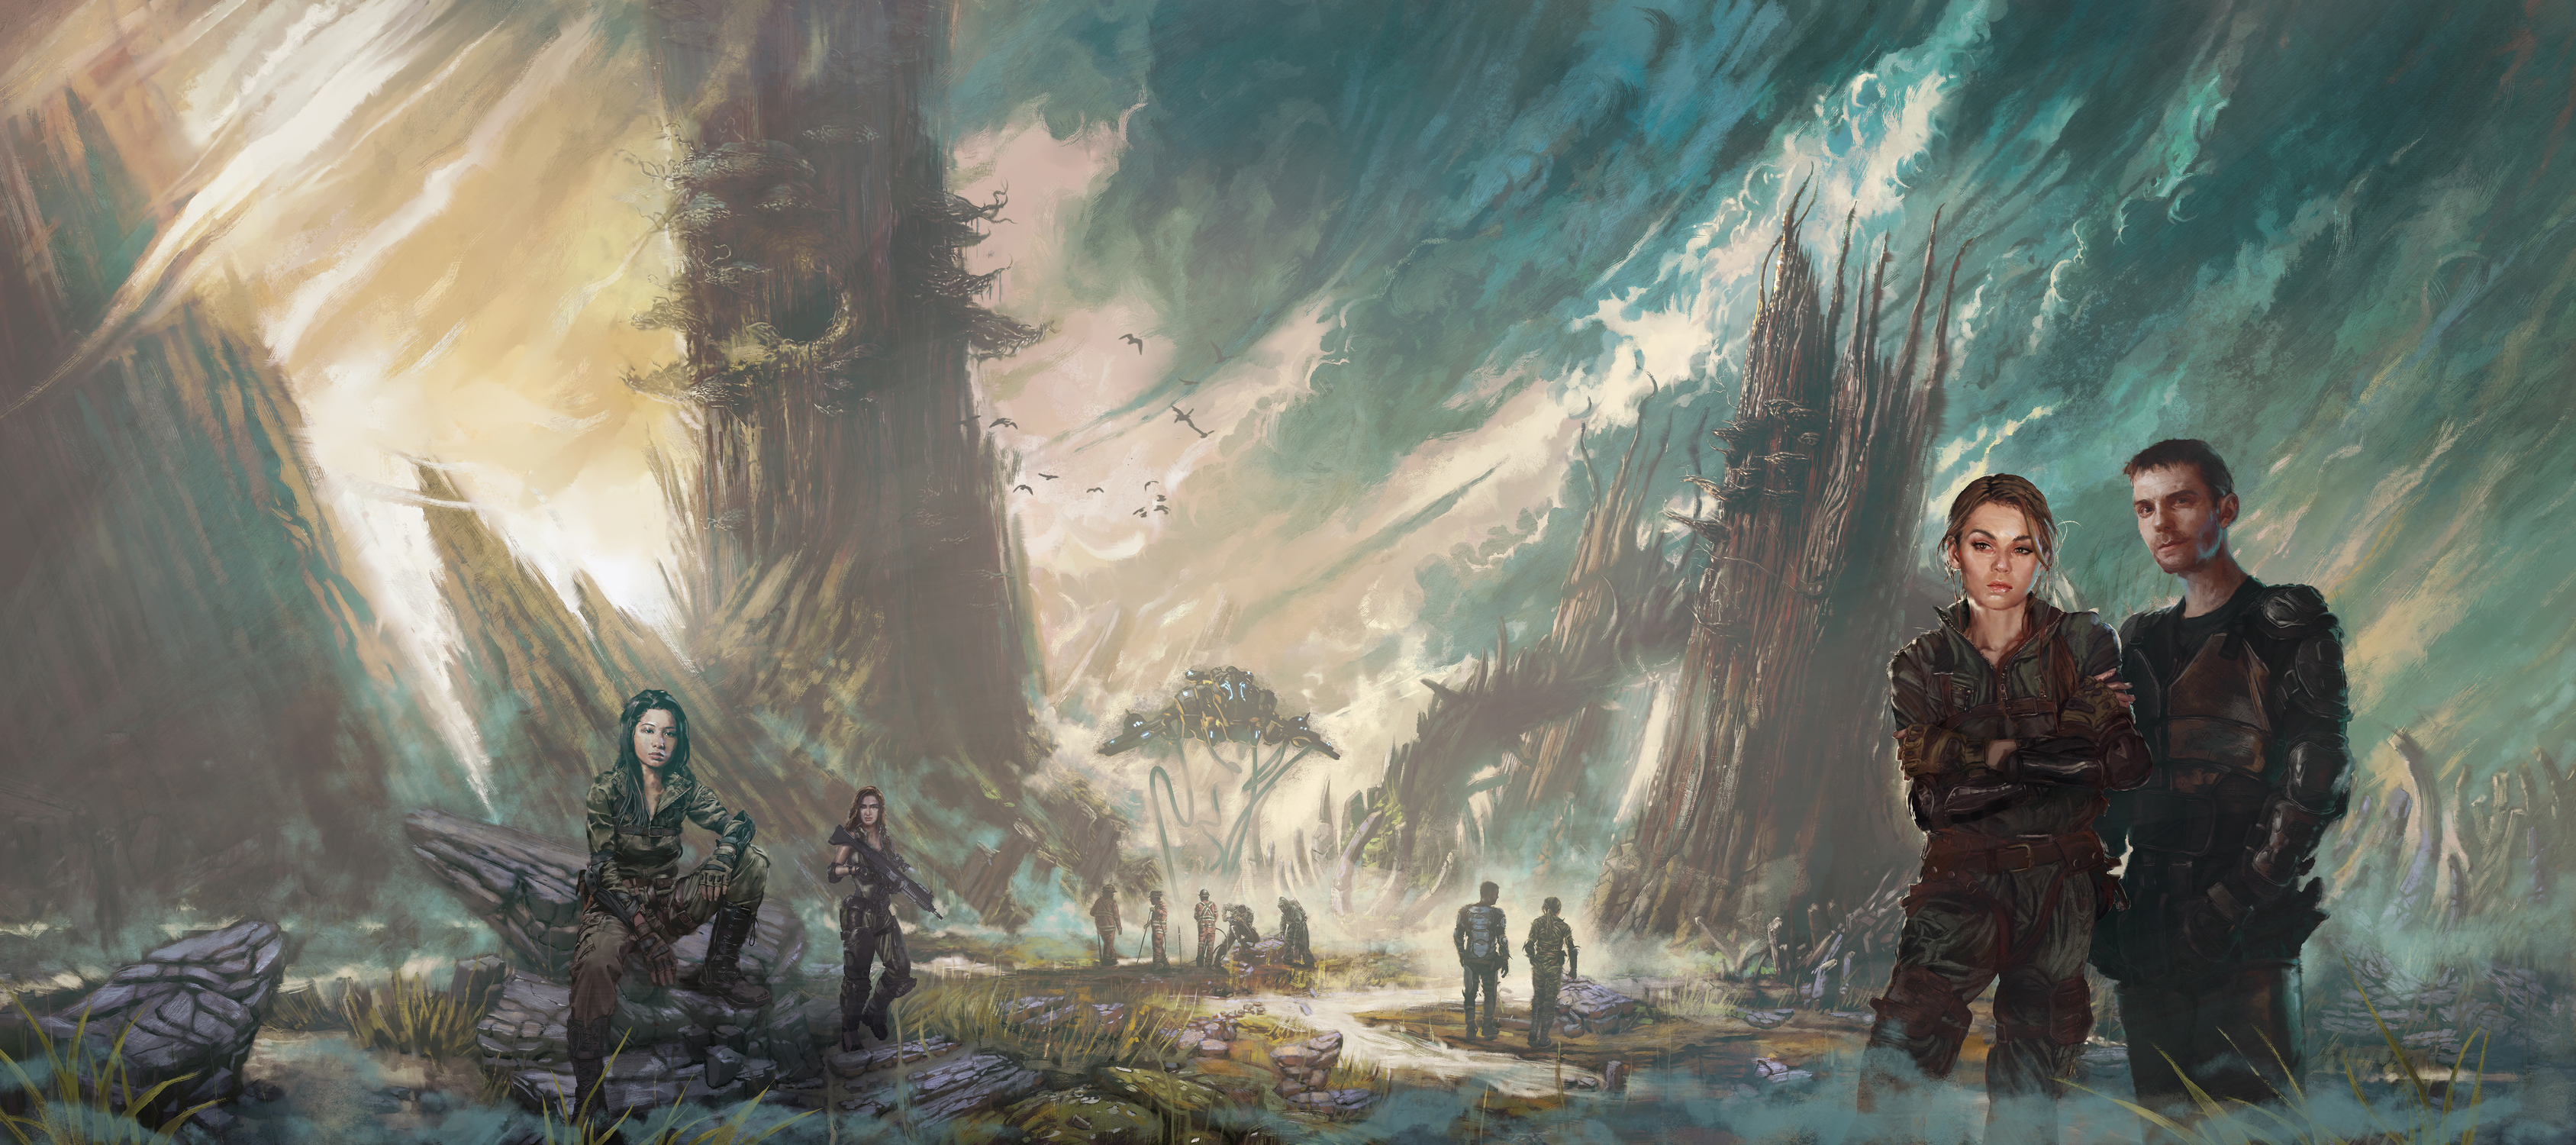 Alien Landscape Artwork by Ken McCuen